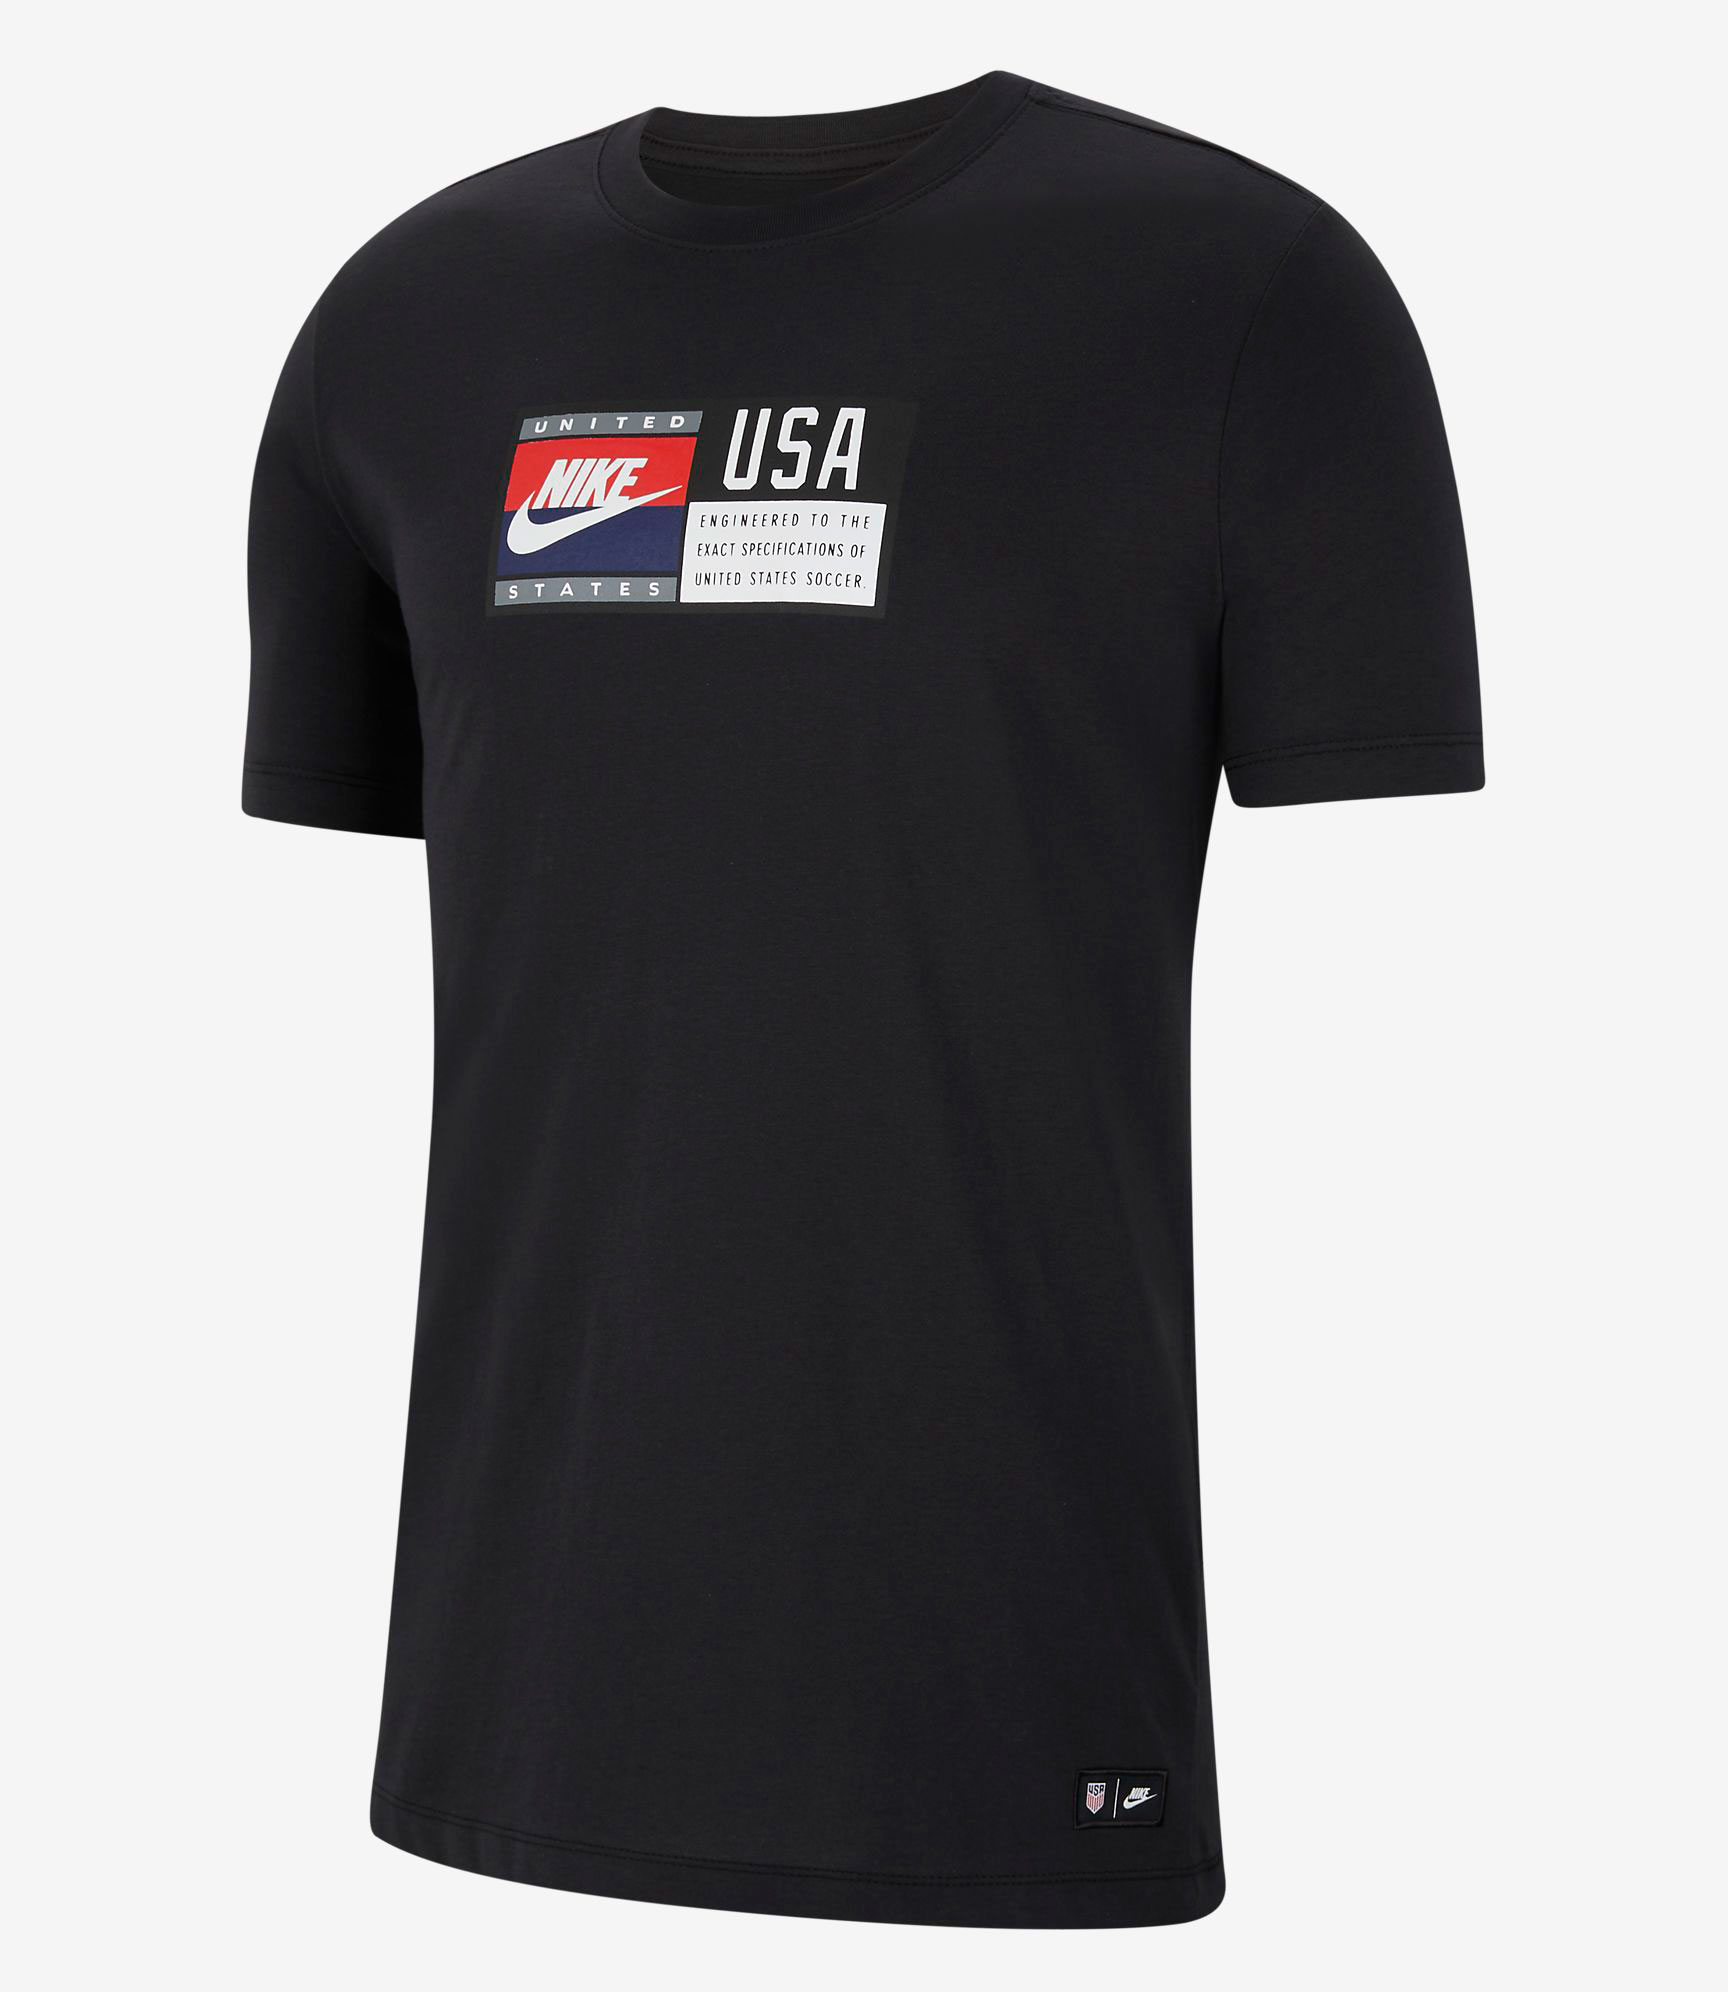 nike-air-presto-navy-usa-shirt-match-1